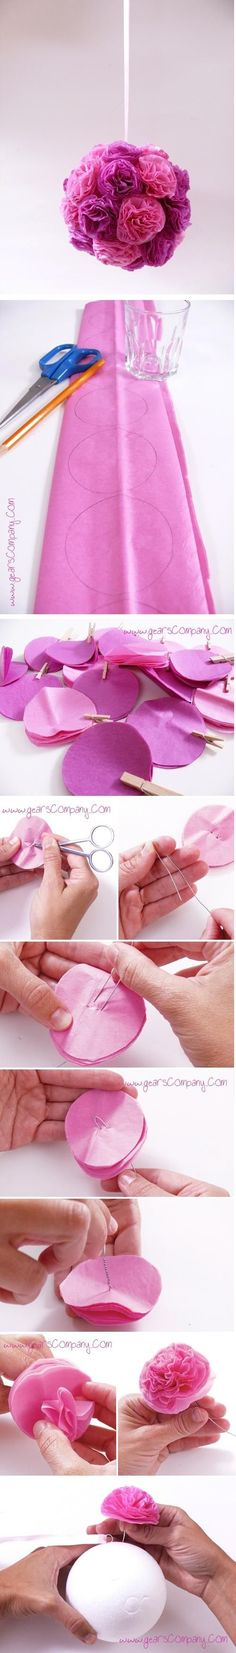 Tissue paper flowers,turned into a flower ball...this is an easy project that makes a beautiful decoration!